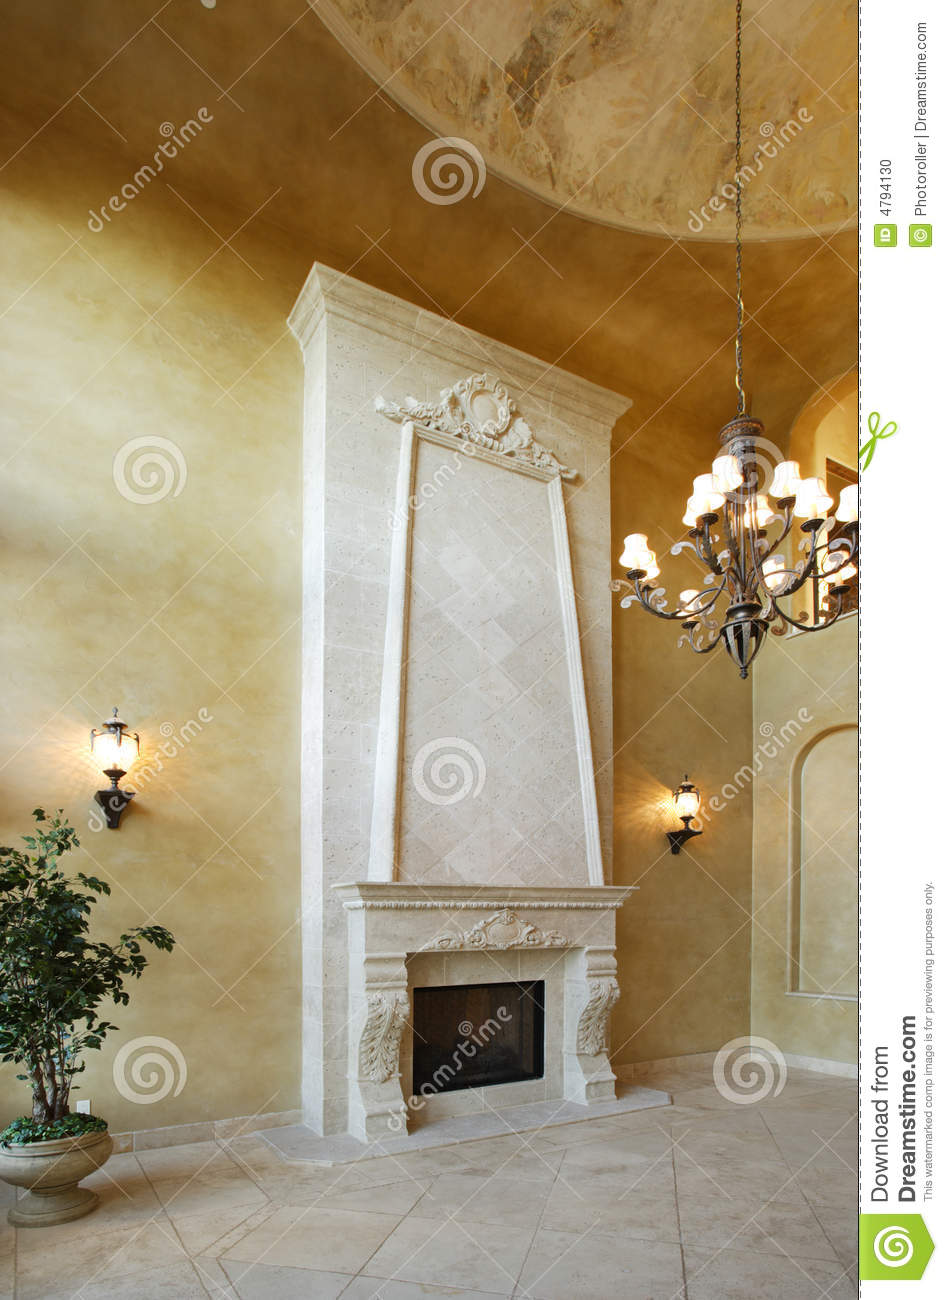 Fireplace In A Luxury Home Stock Photo Image 4794130